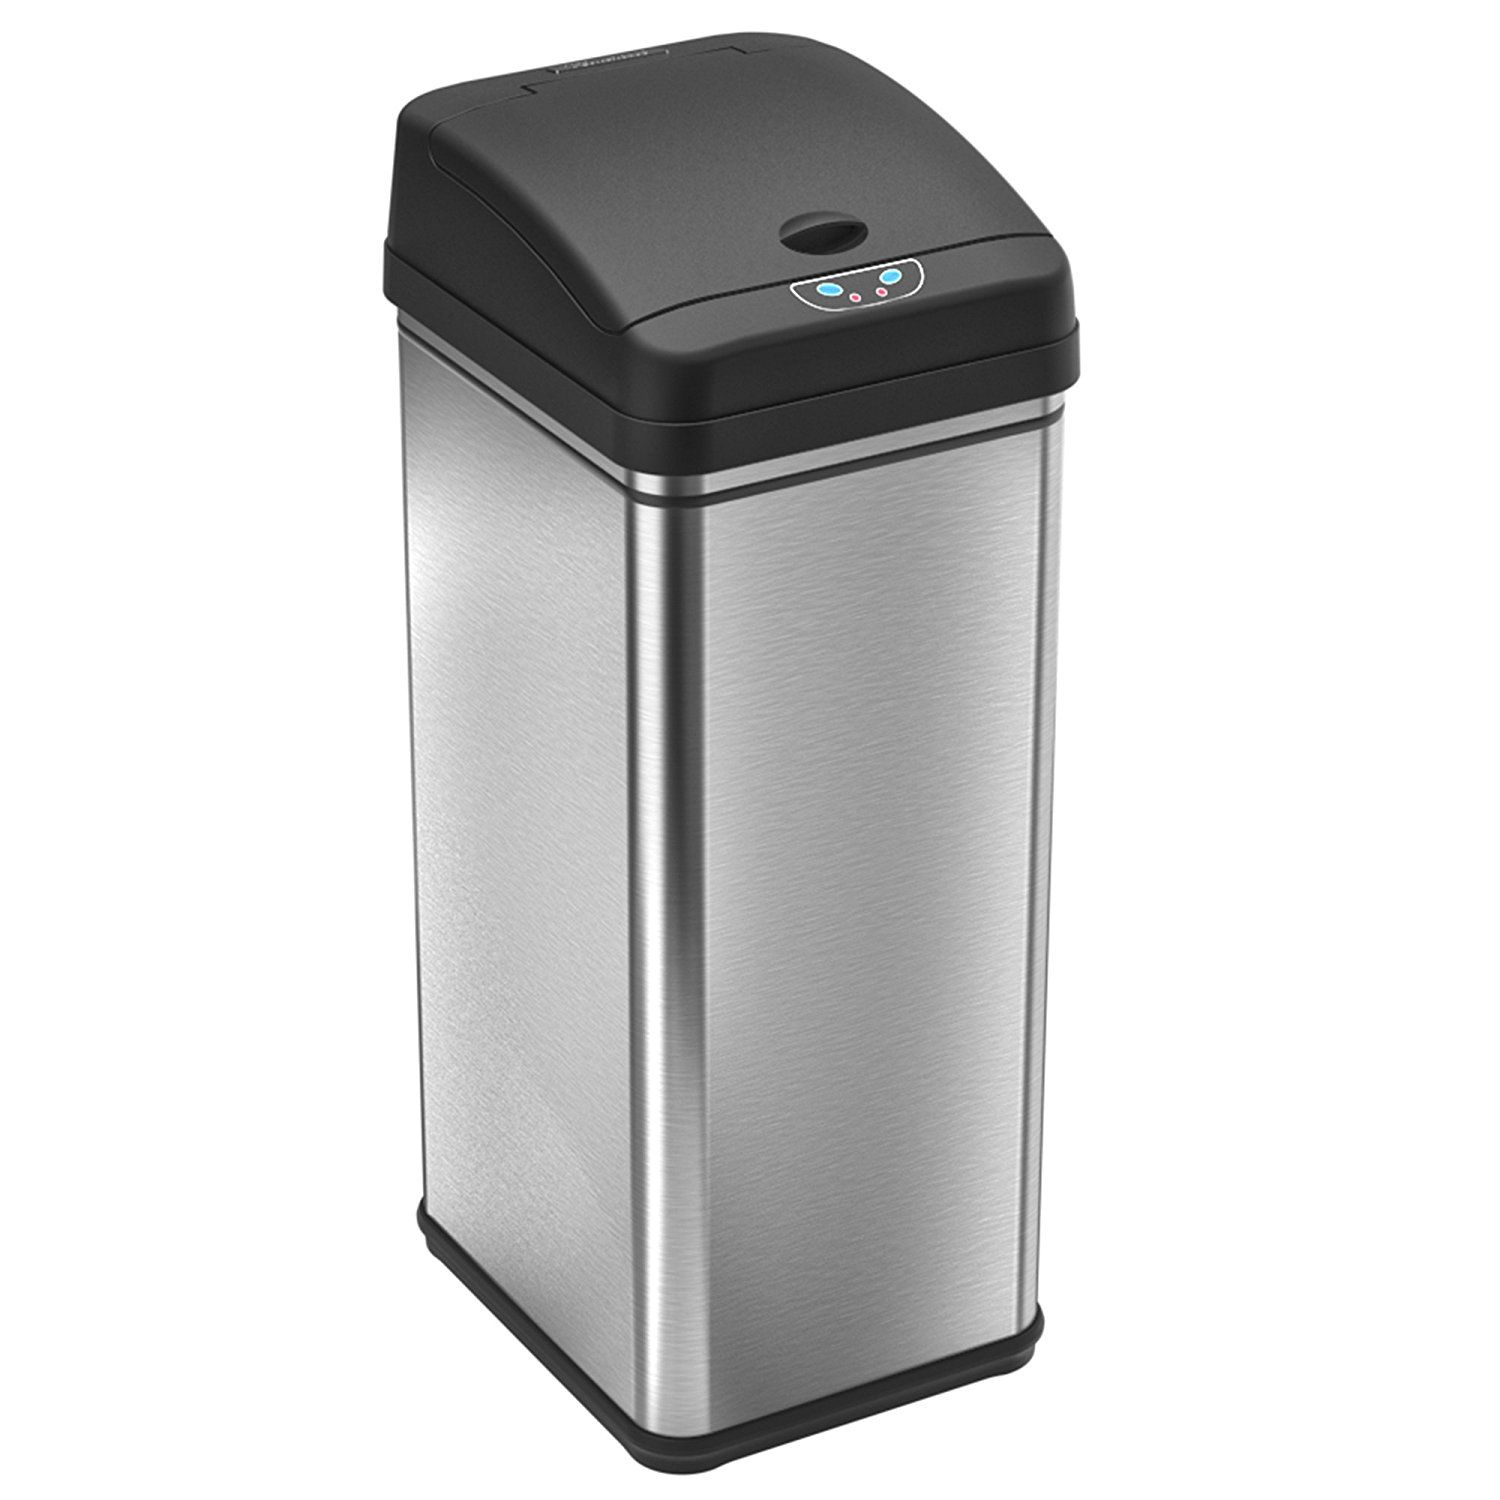 iTouchless 13 Gallon Touchless Sensor Kitchen Trash Can, Stainless Steel, Odor Filter... by iTouchless Housewares & Products Inc